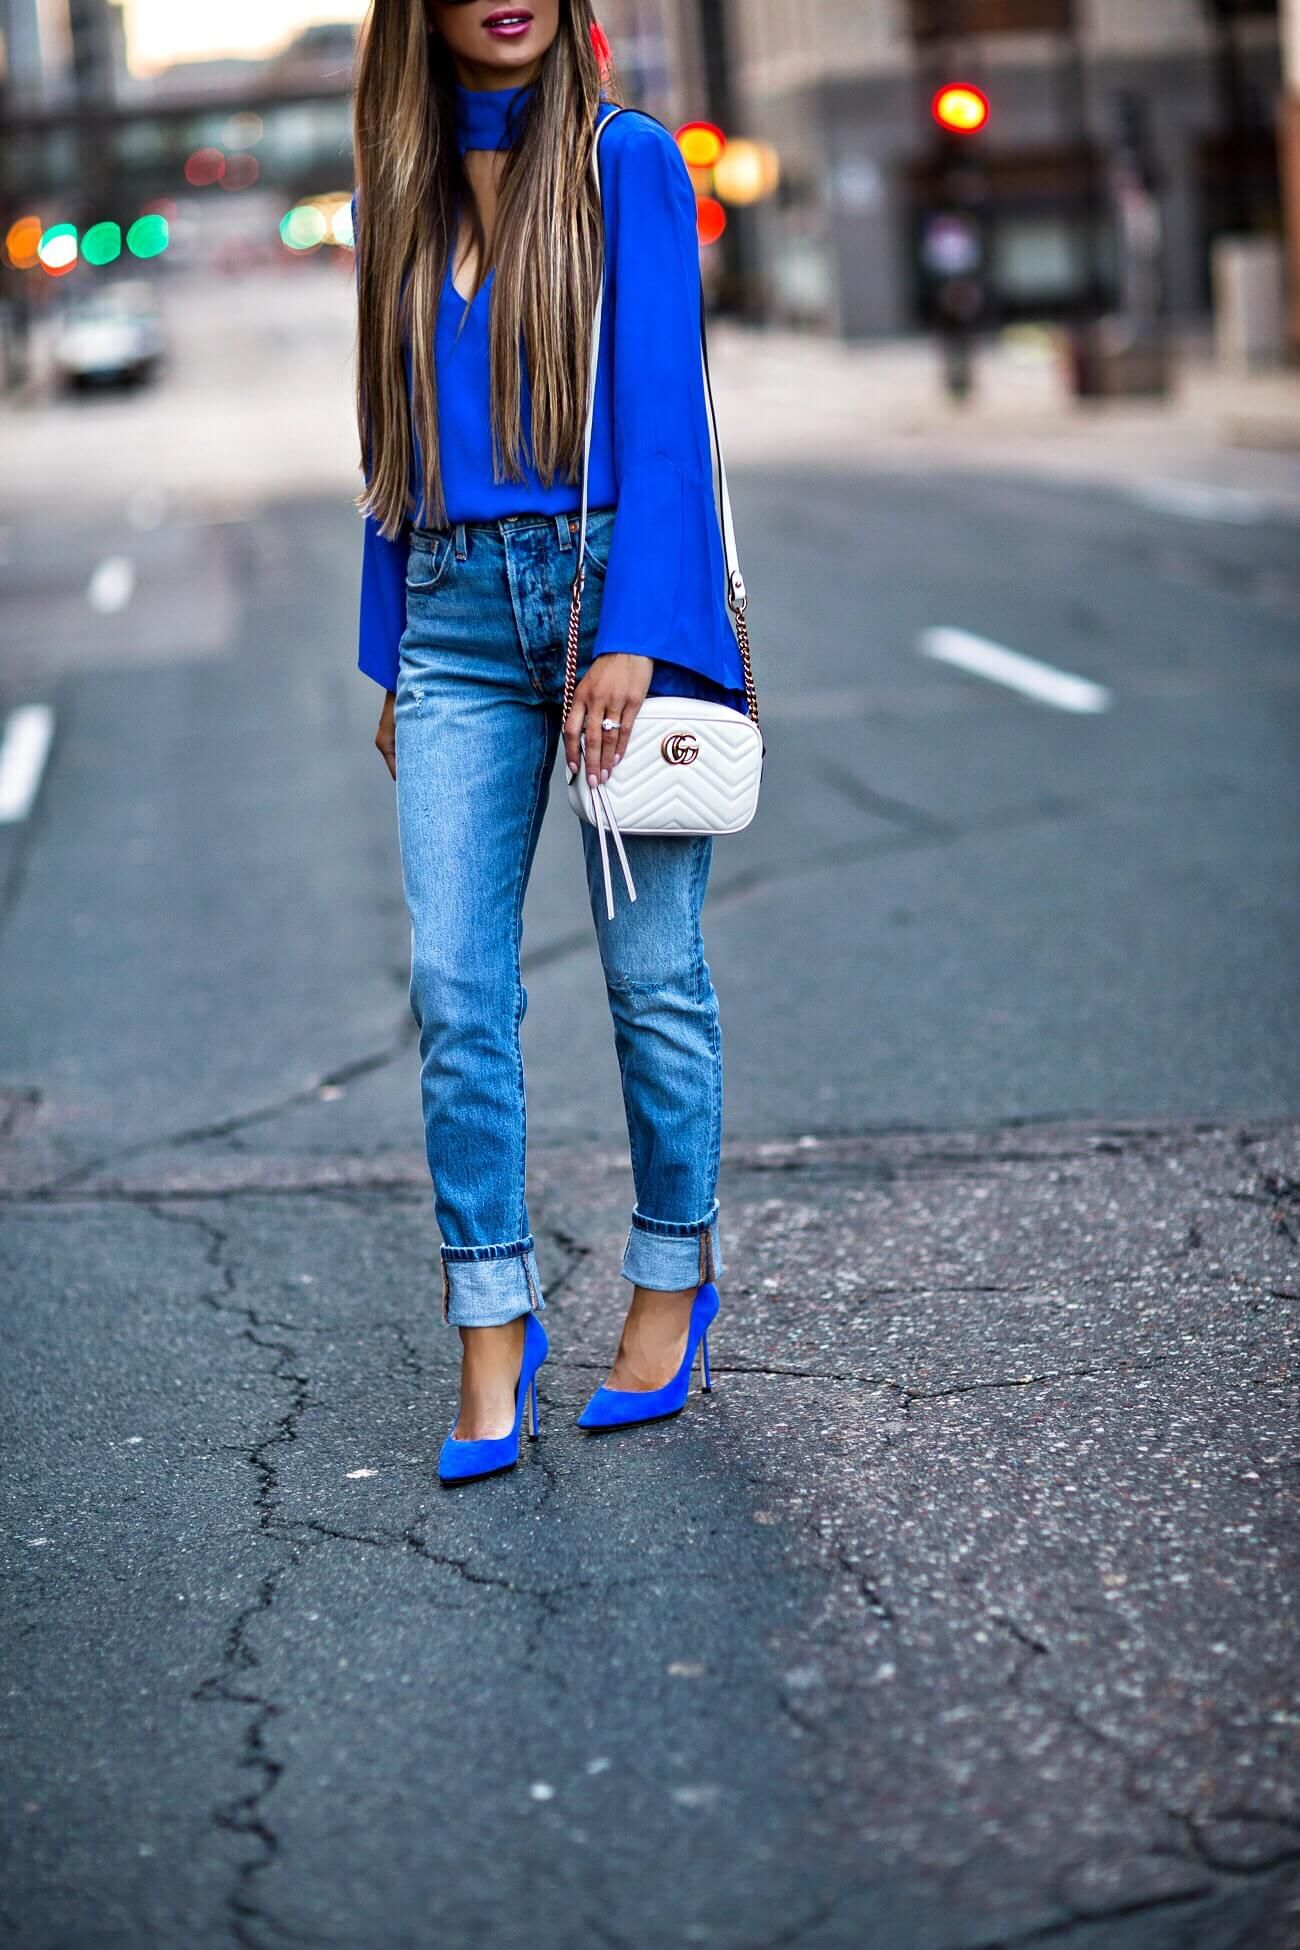 72206effdf2d fashion blogger mia mia mine wearing jimmy choo suede heels and a gucci  marmont mini bag